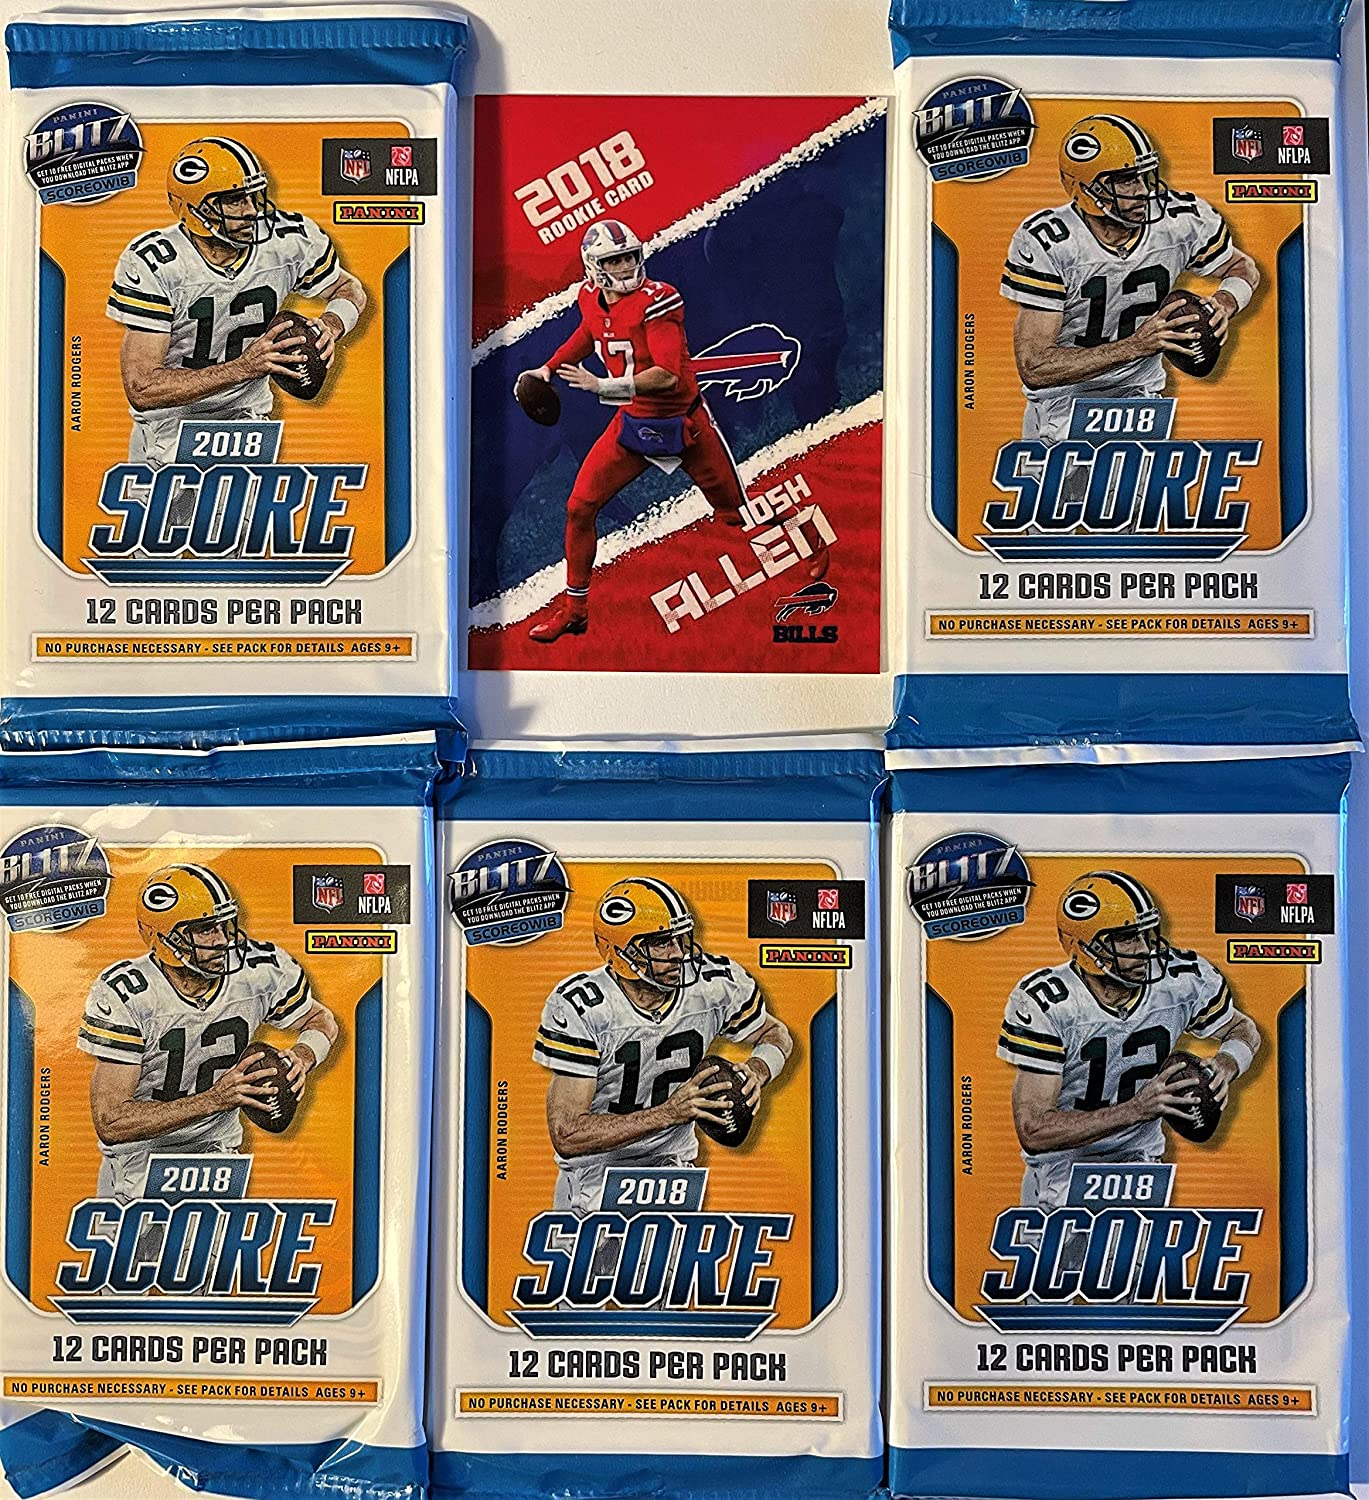 SAQUON BARKLEY Rookie Cards 61 Total Cards LAMAR JACKSON 5 Factory Sealed 2018 Panini SCORE Football Cards with 12 Cards Per Pack Plus One Custom Novelty Josh Allen Football Card BAKER MAYFIELD Chase JOSH ALLEN